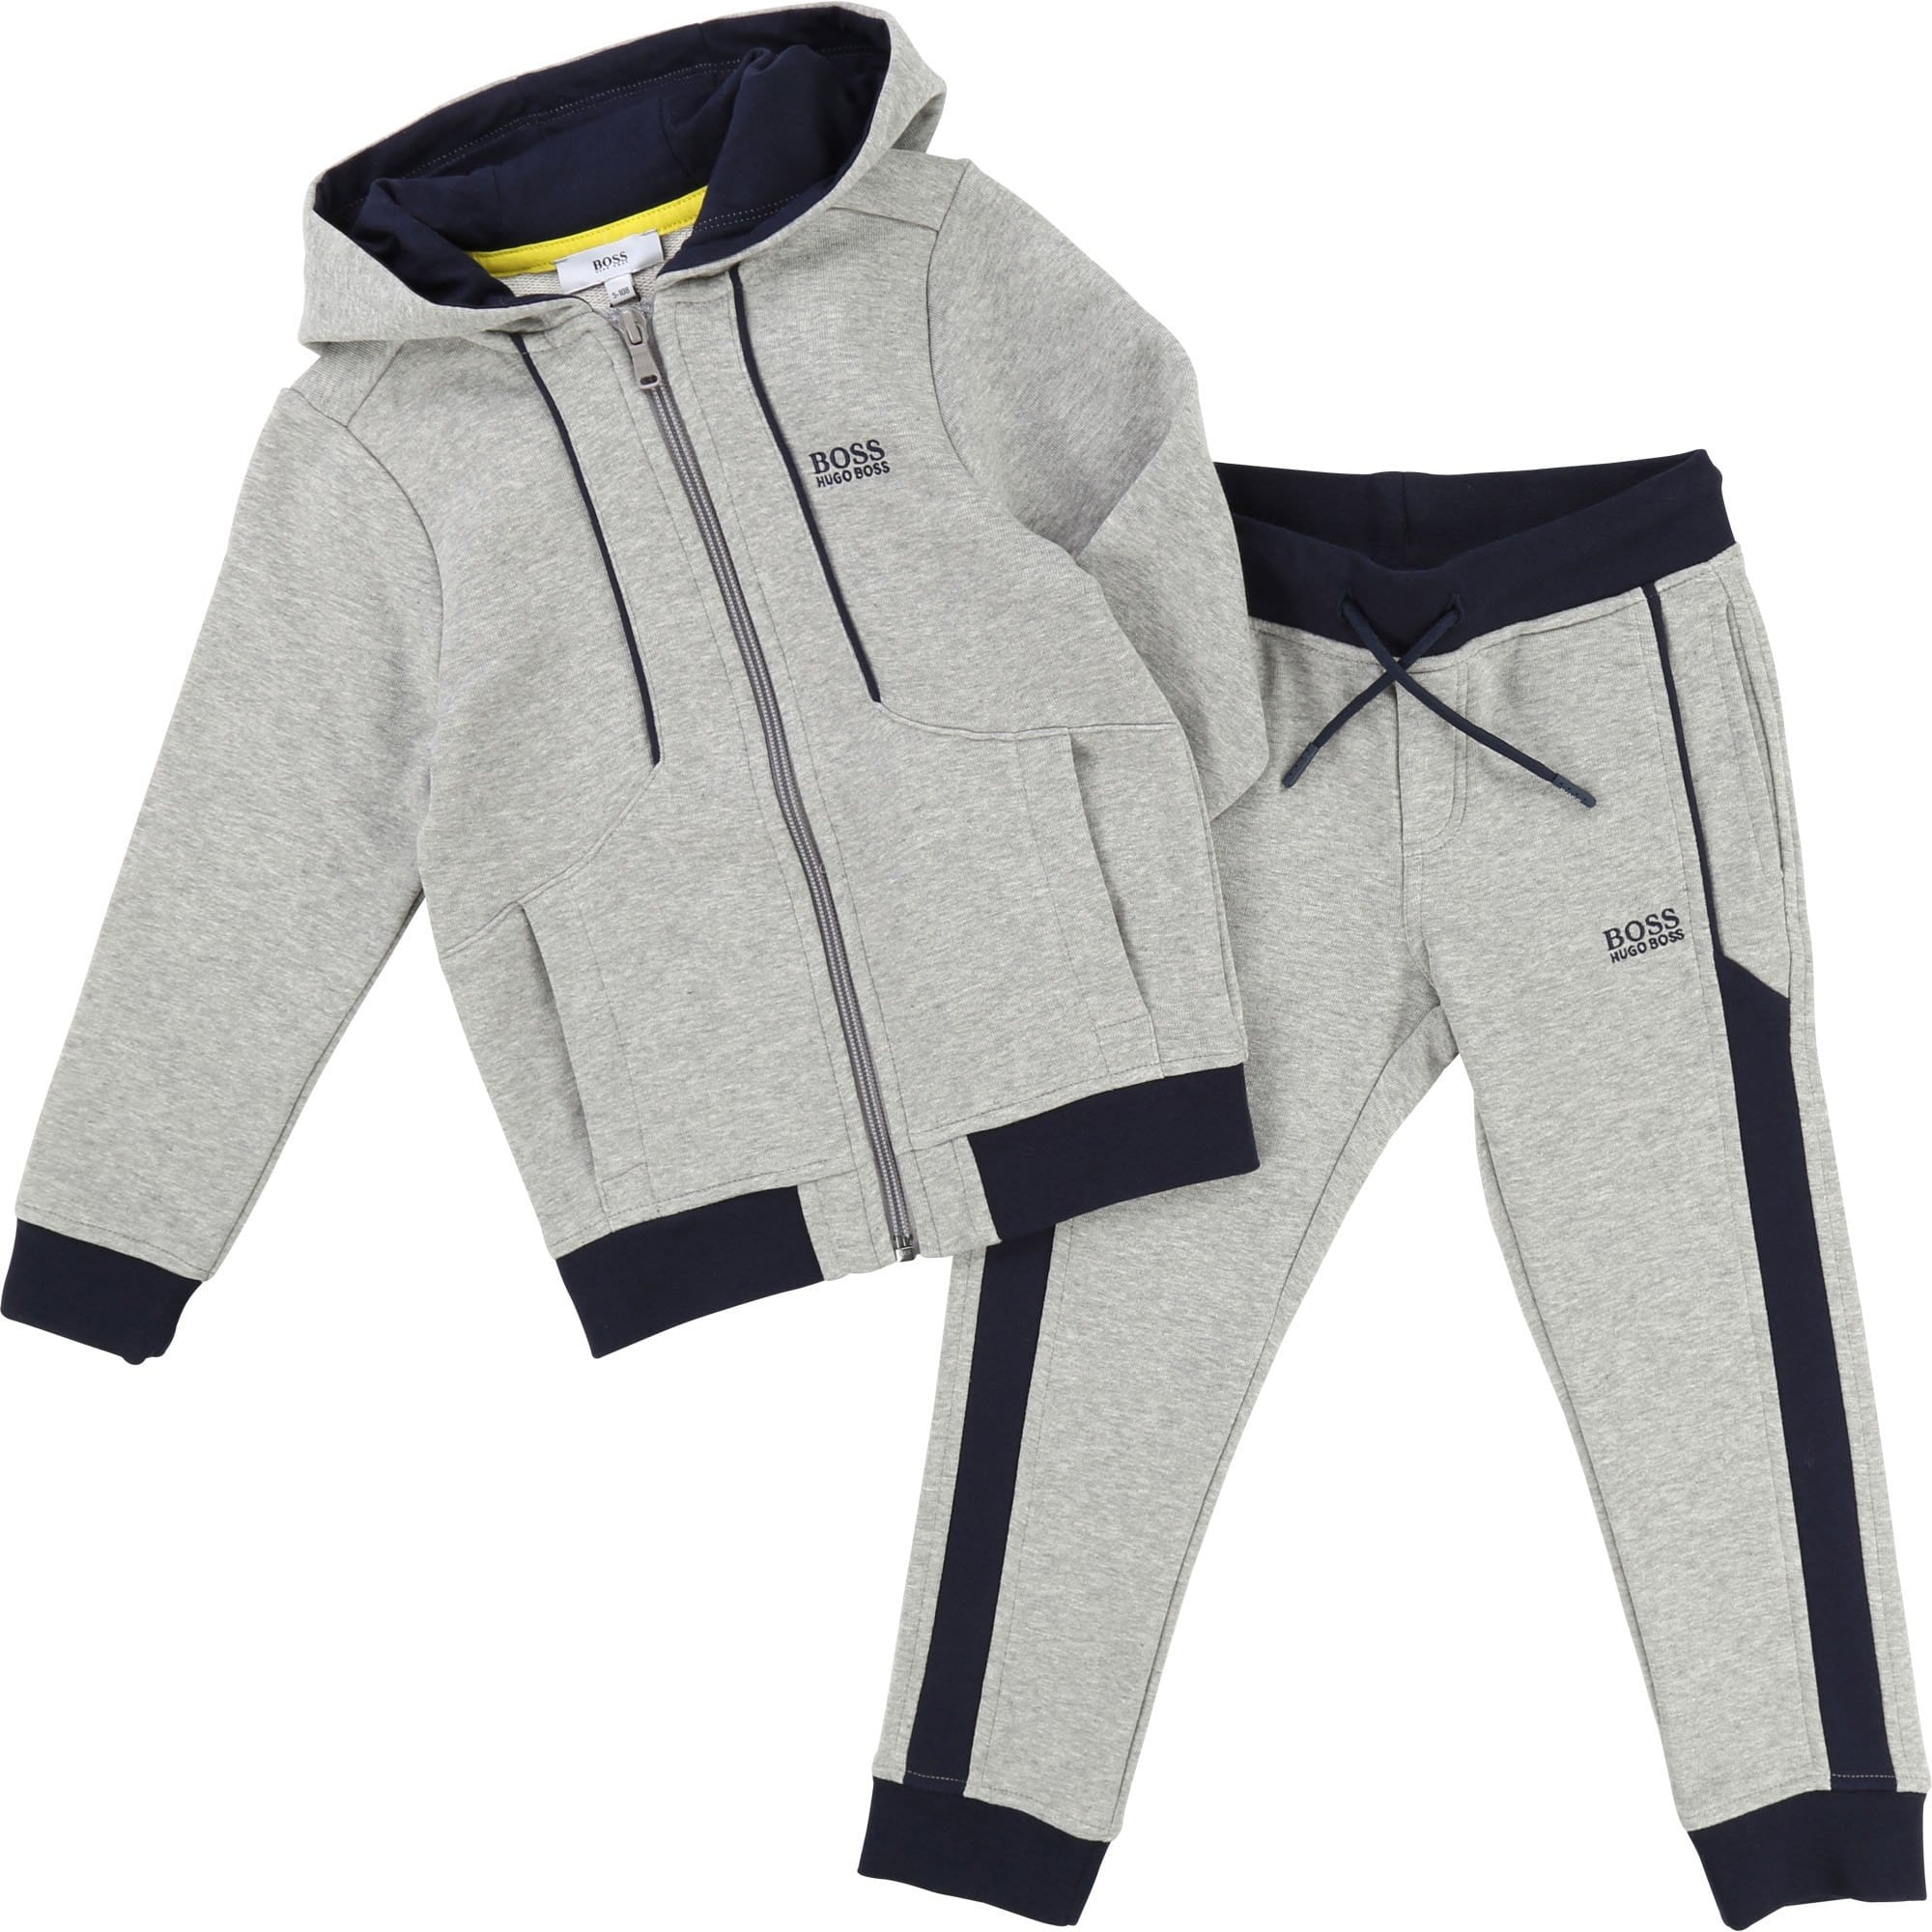 Hugo Boss Boys Cadet Tracksuit (4715503714435)